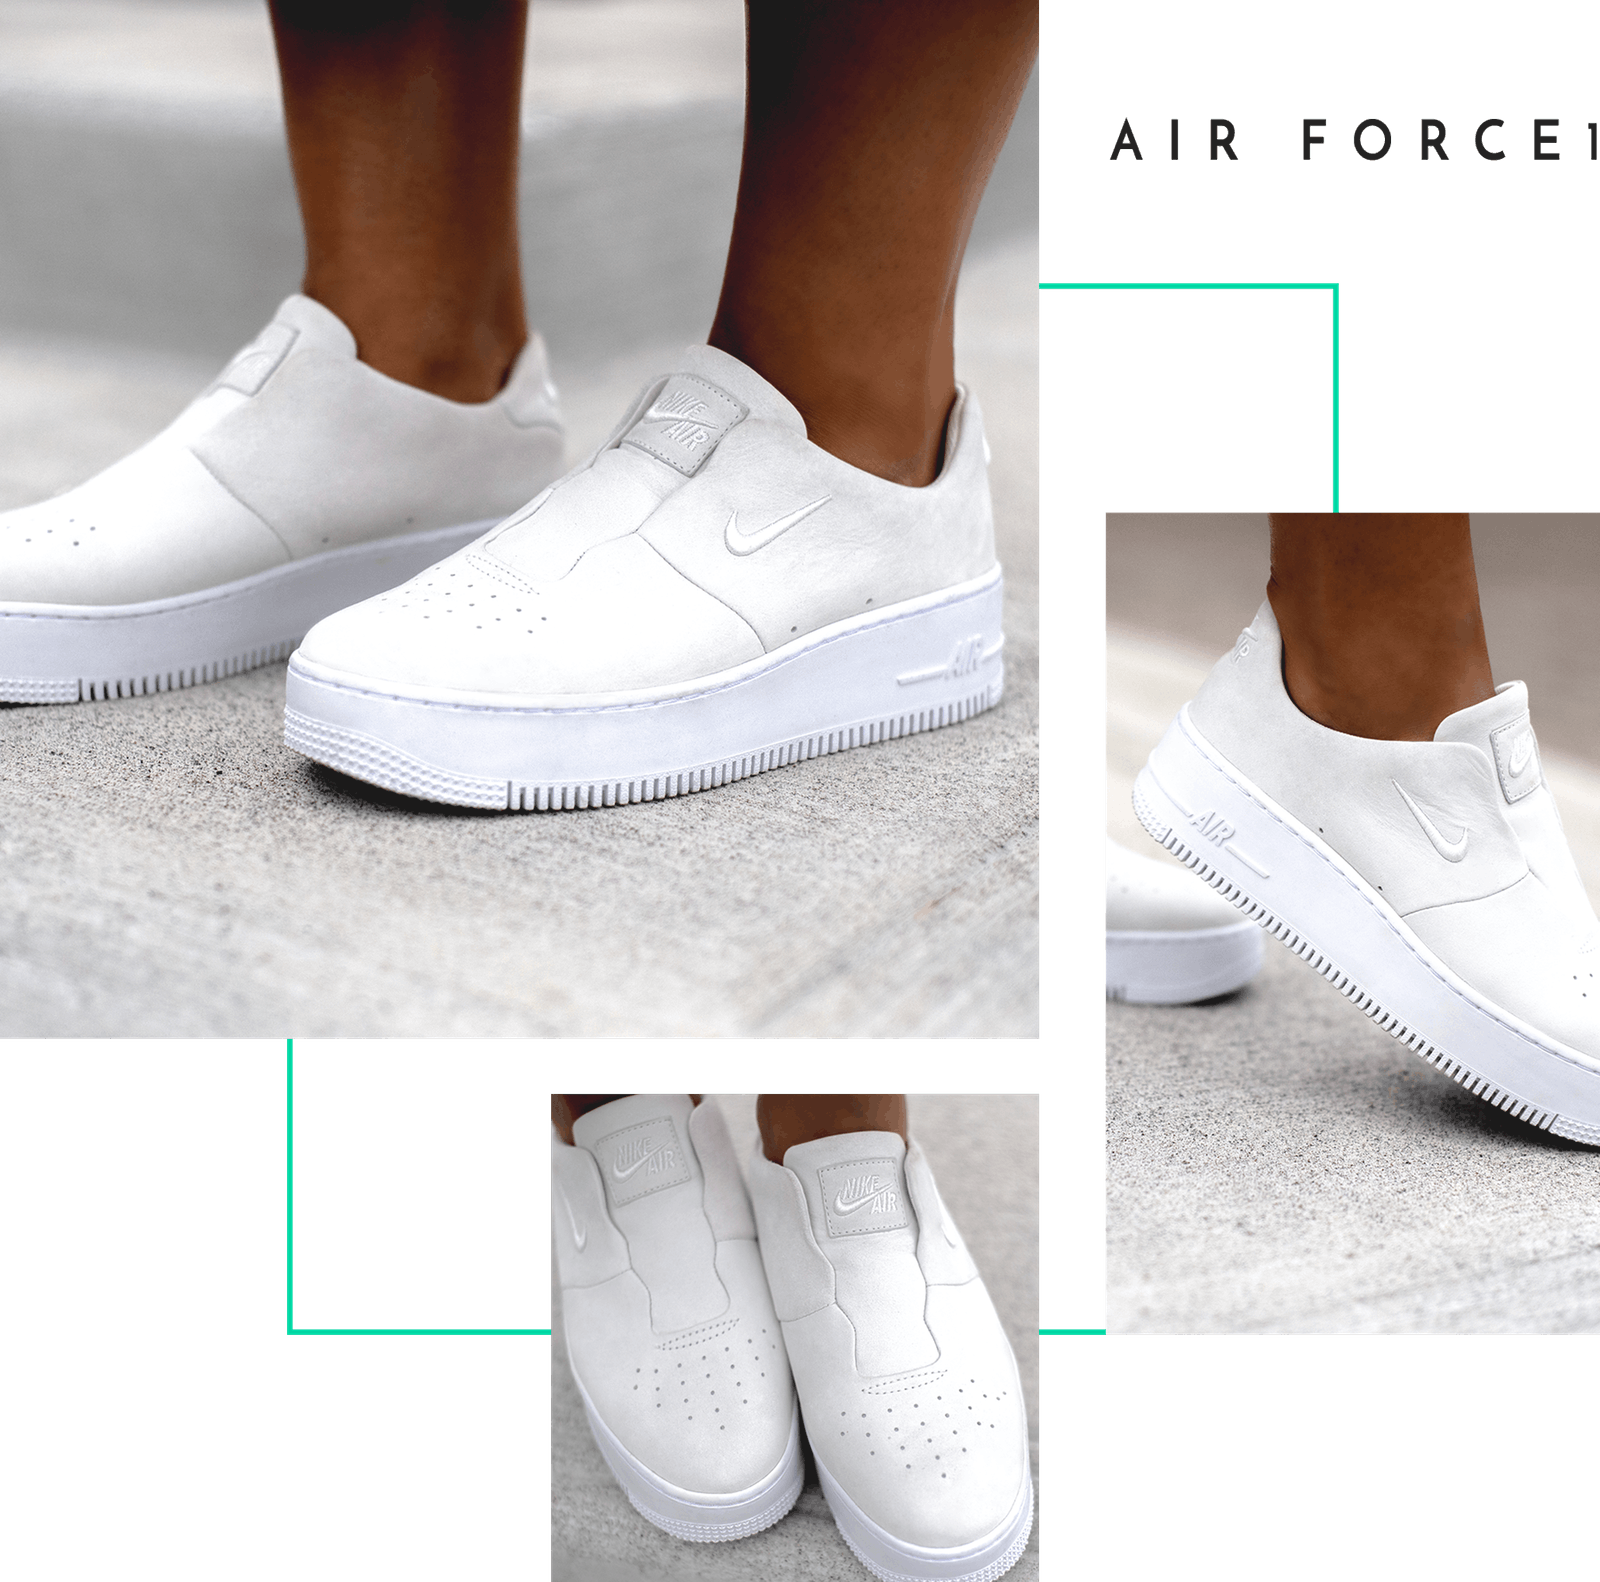 Nike The 1 Reimagined SAGE Air Force Jordan On Feet Closer Look Women  Exclusive Female Designer